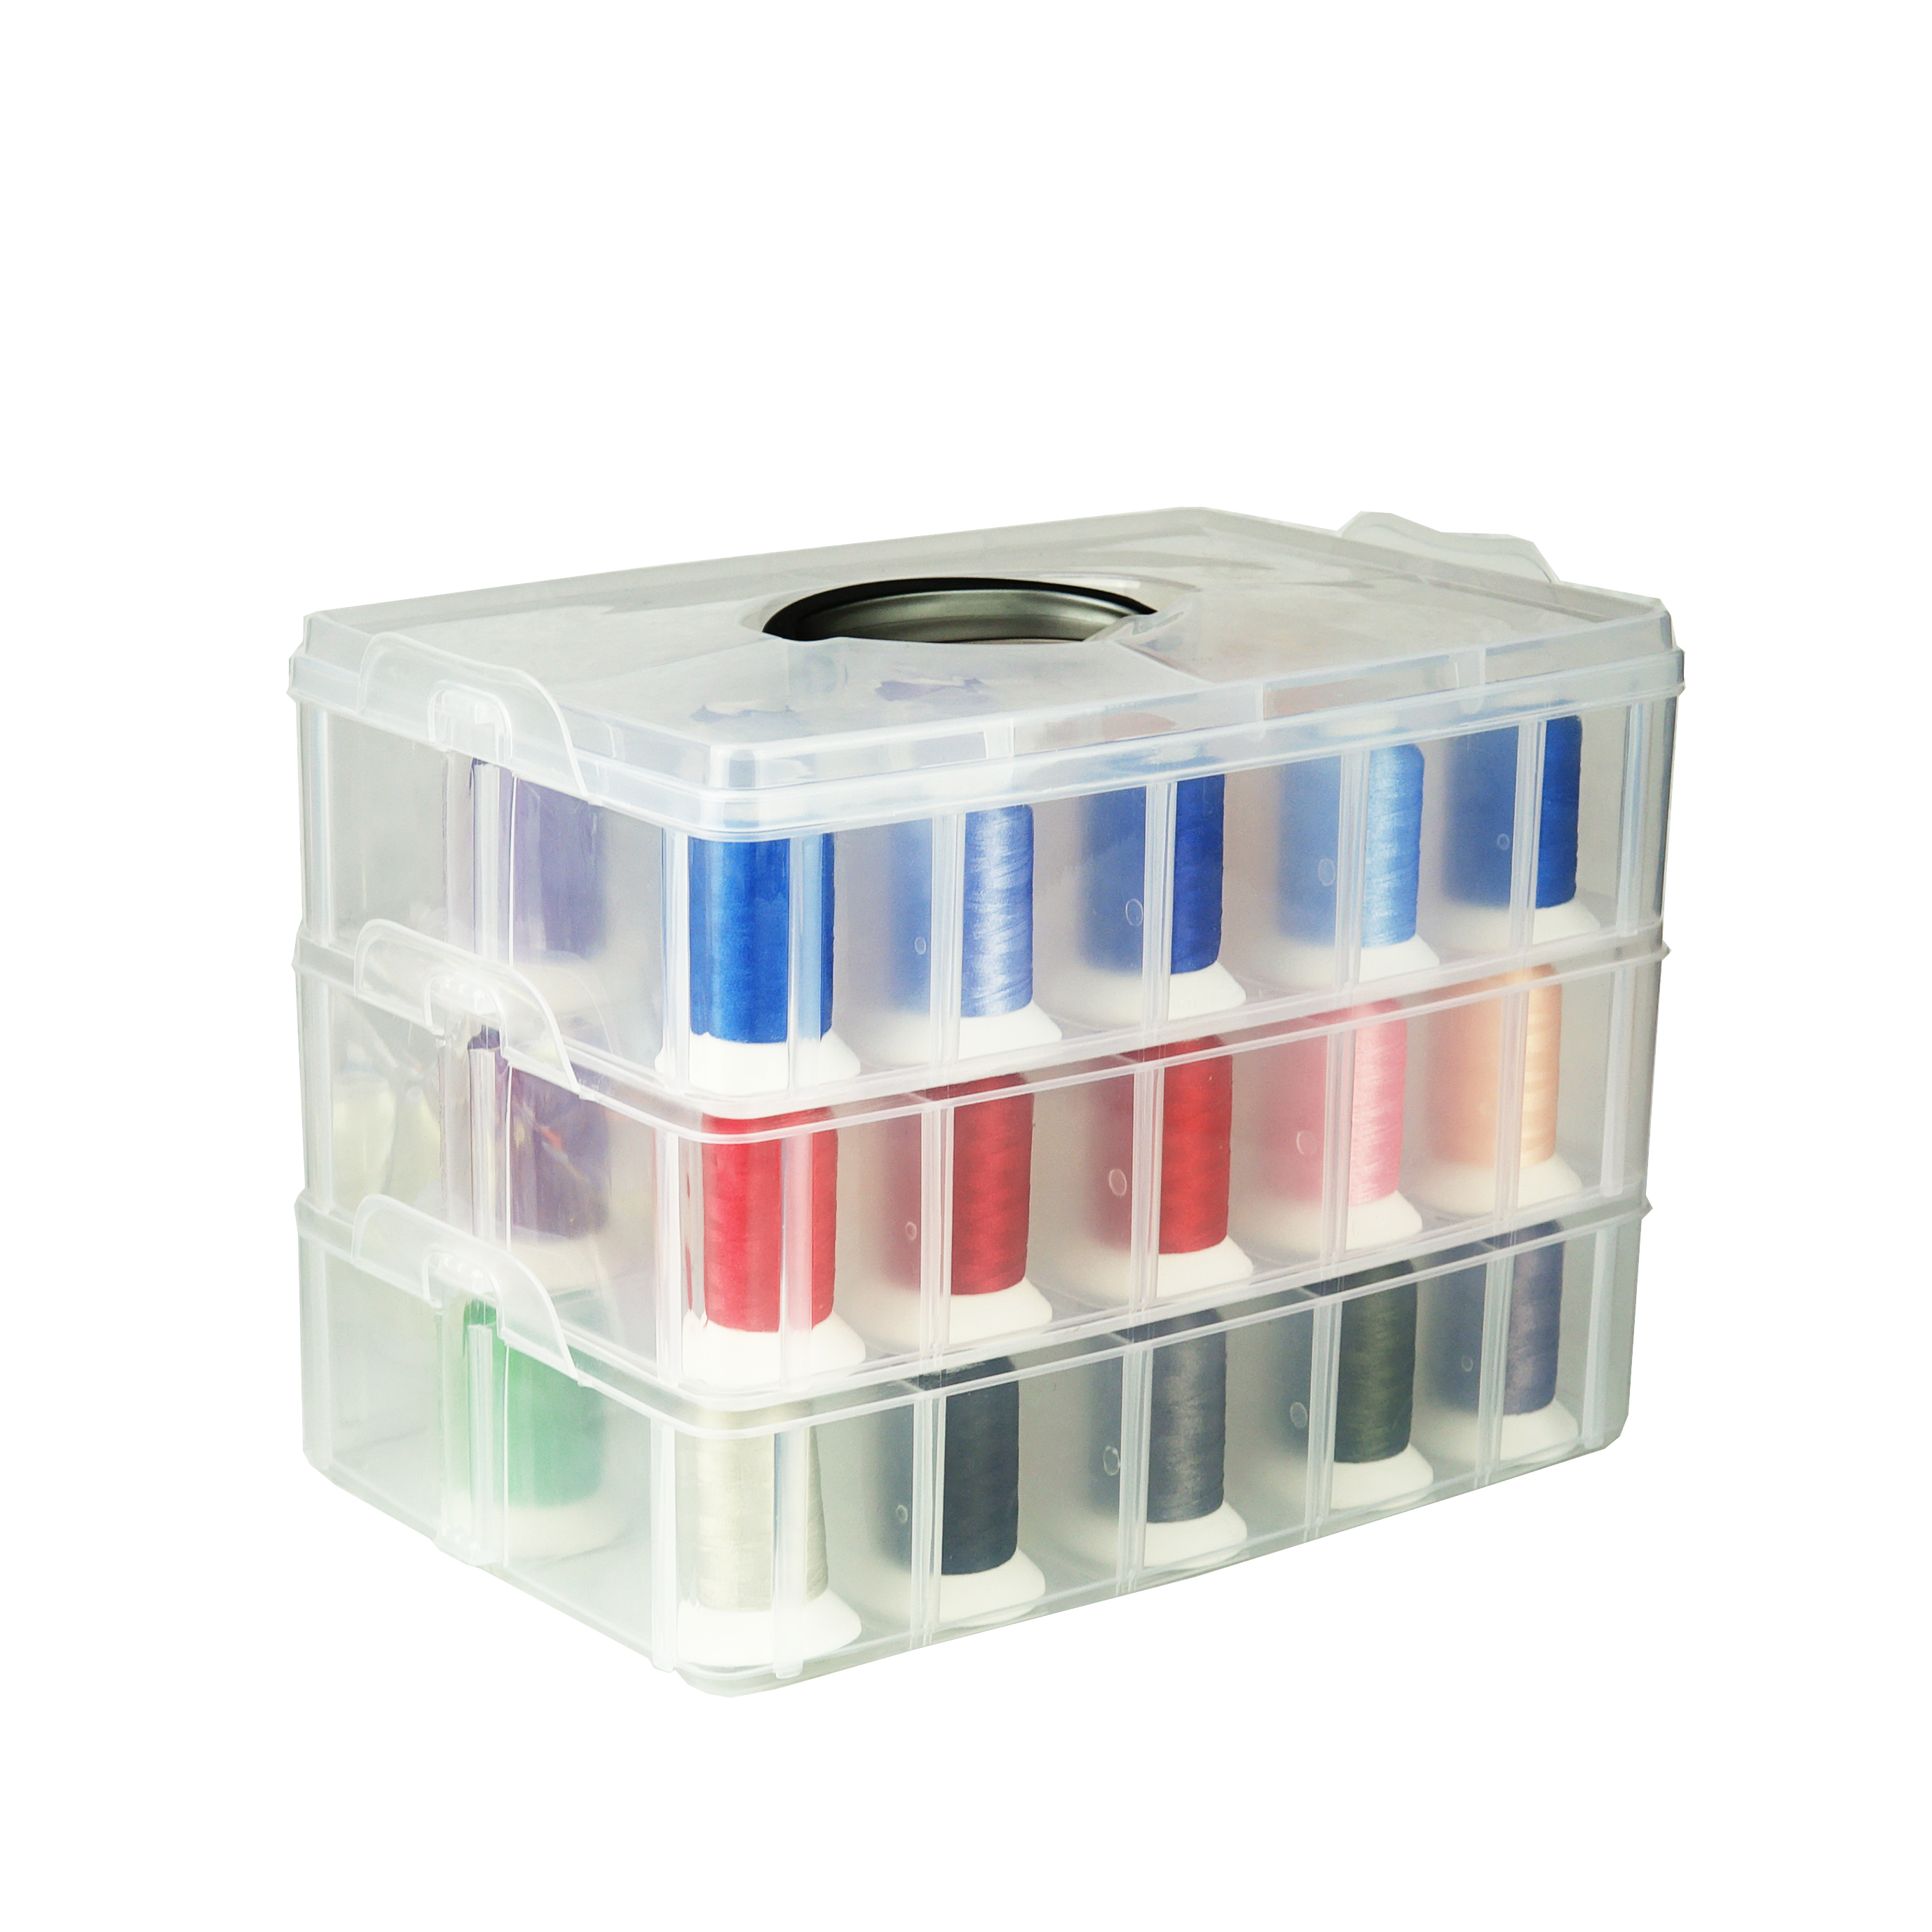 Hot Selling 120D 2 40WT 1000m cone polyester embroidery thread with 61pcs kit plastic box DHL